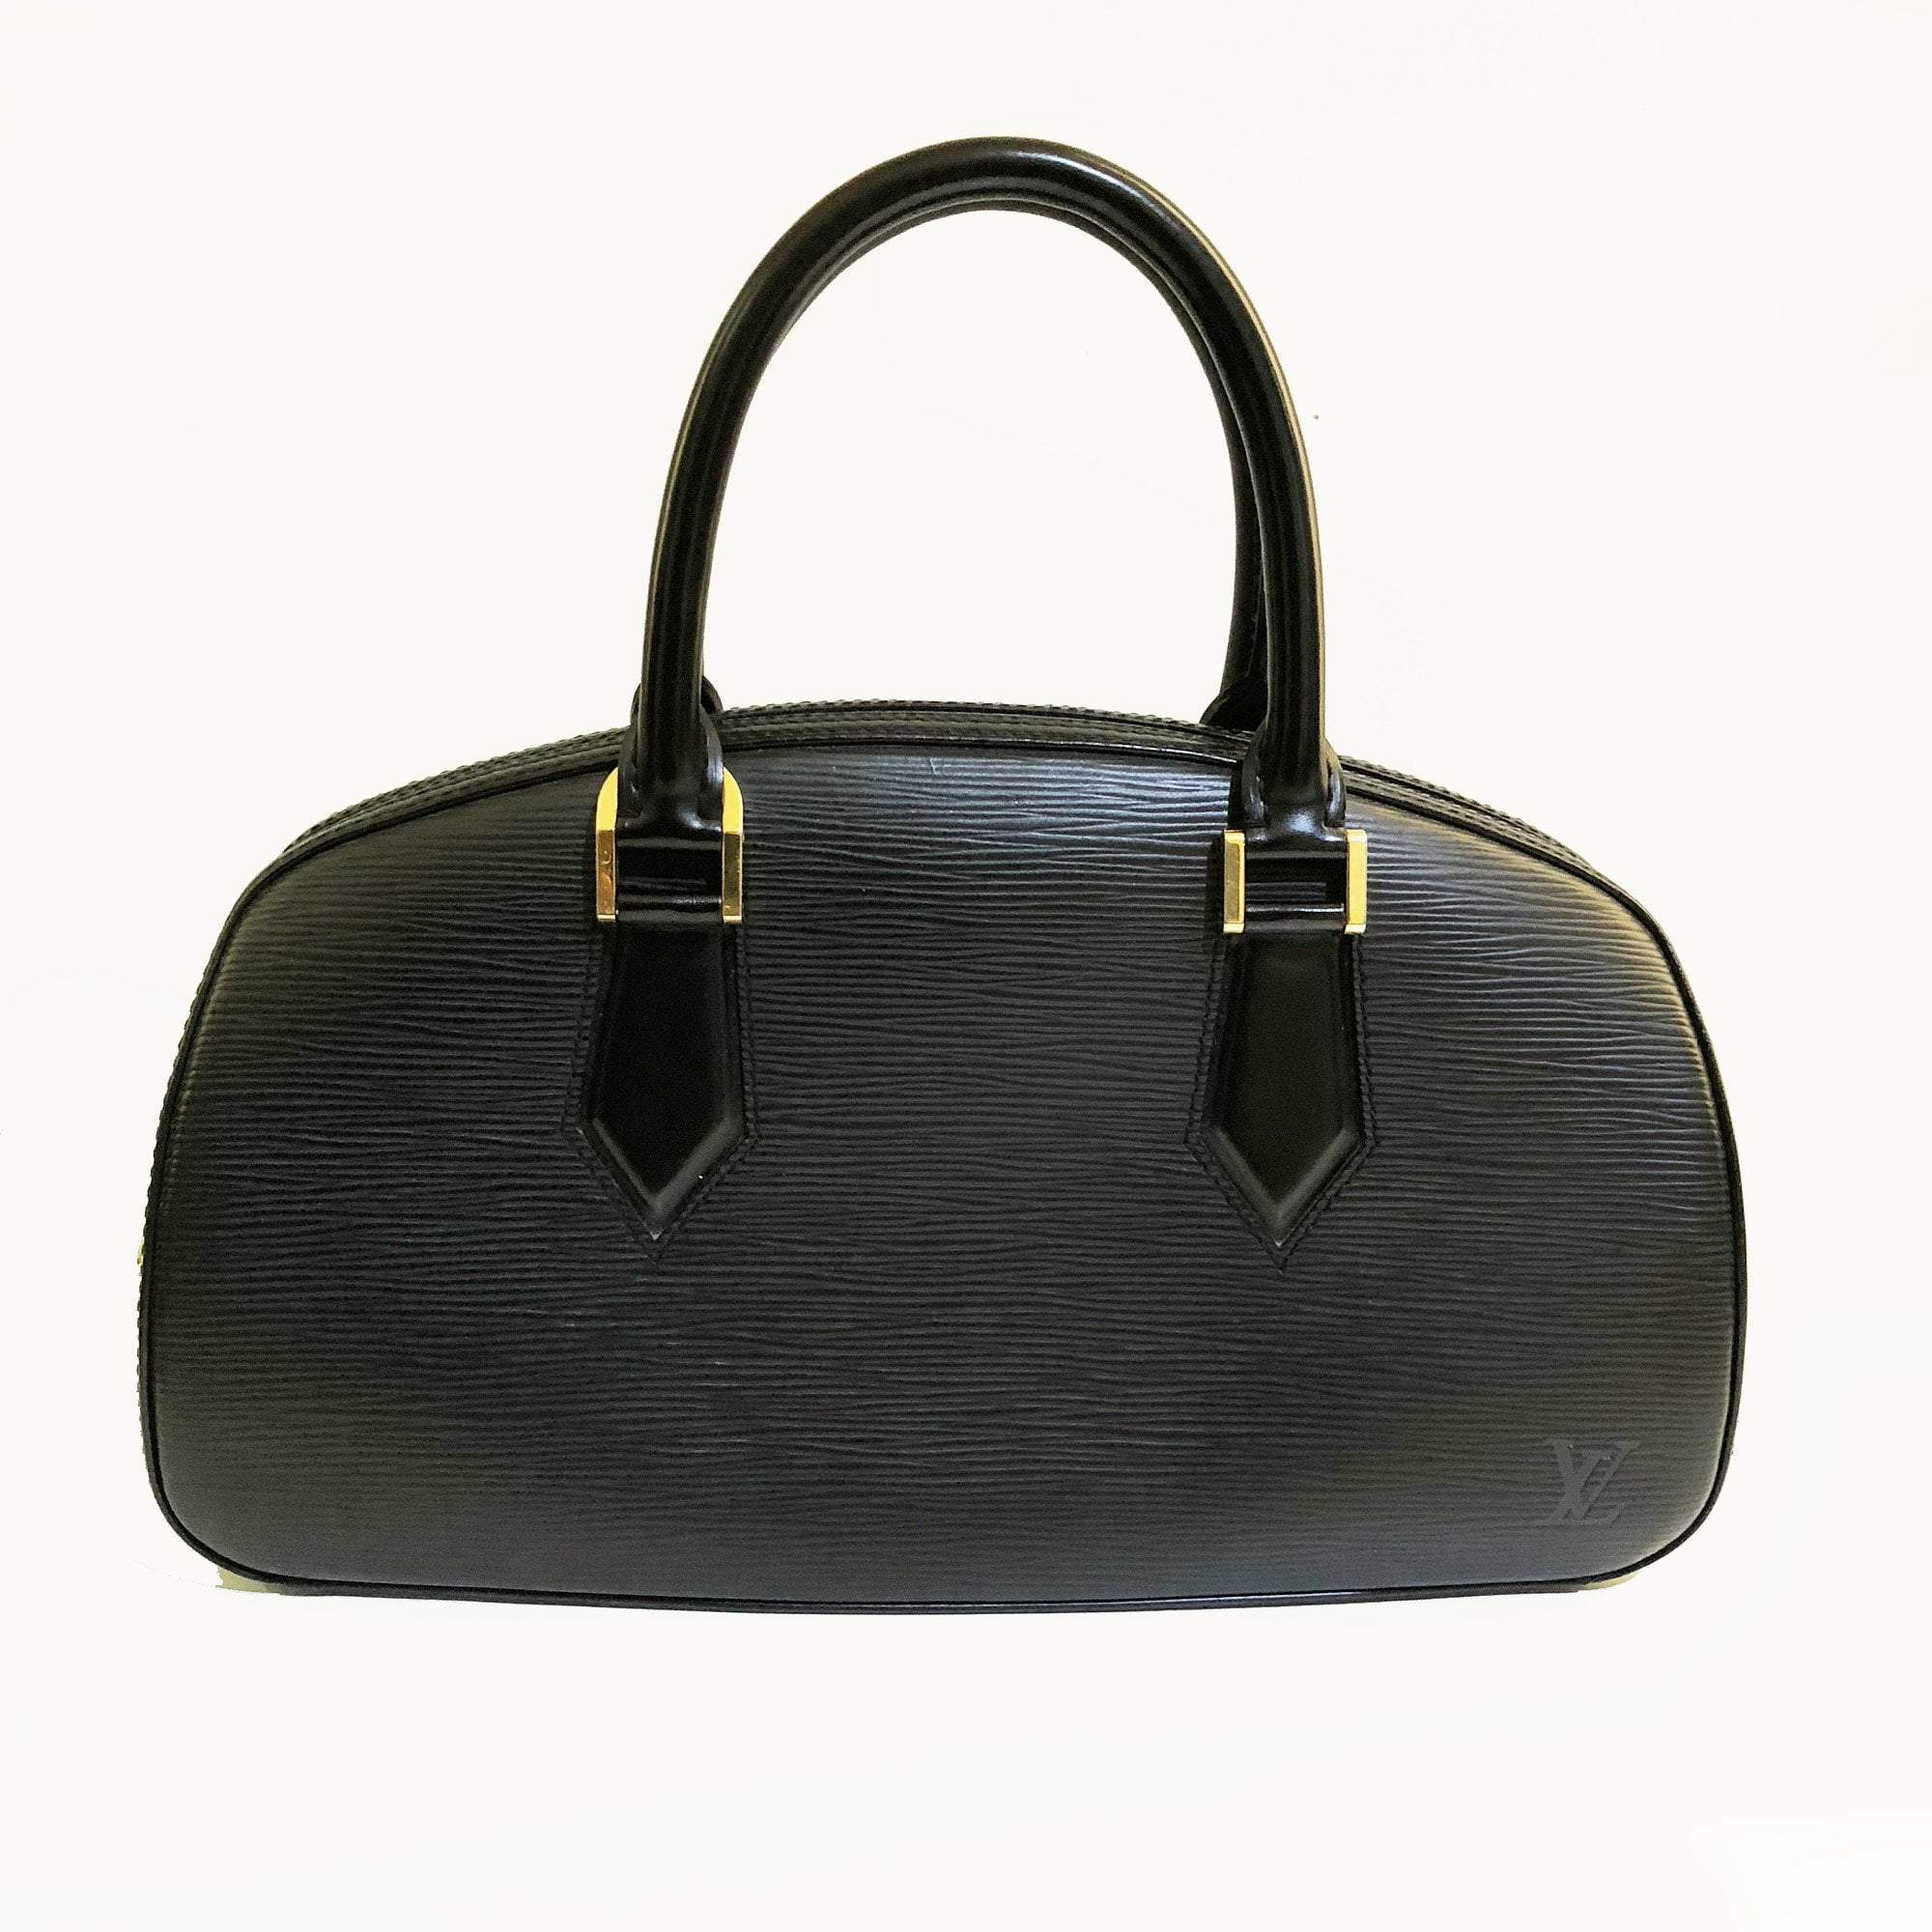 Louis Vuitton Tassil Black Epi Leather Jasmin Handbag